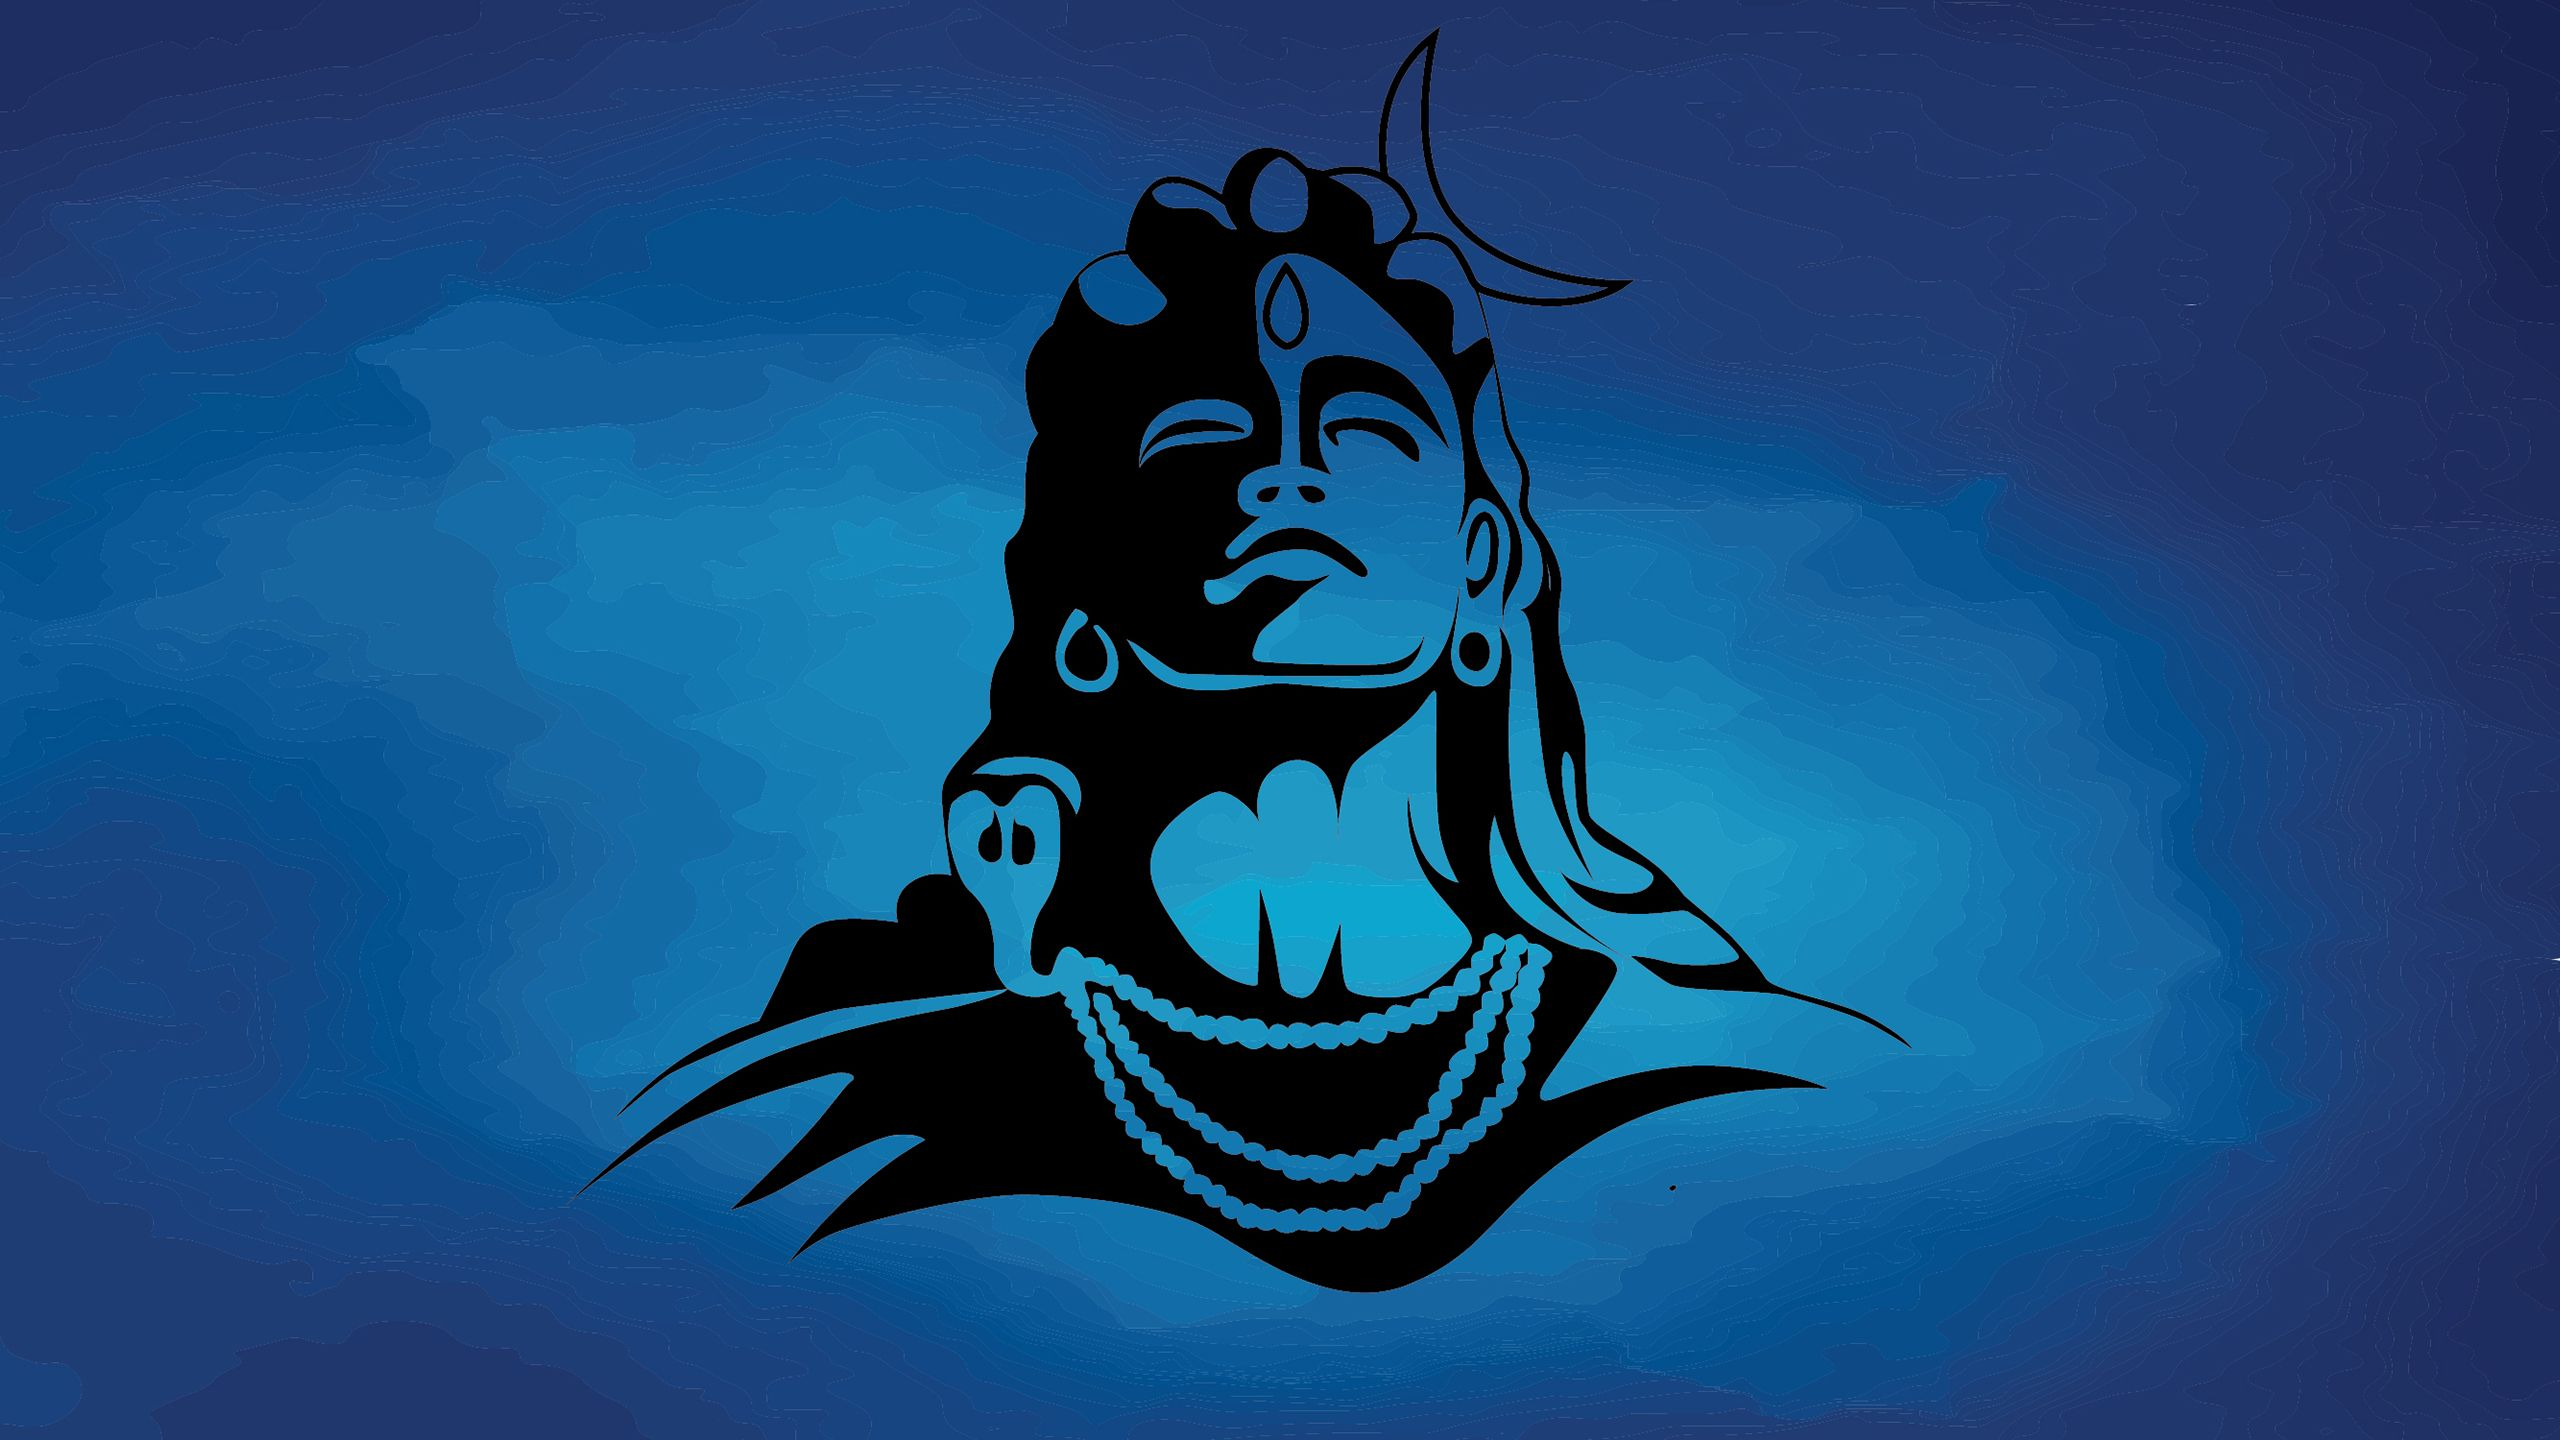 Shiva Wallpapers Top Free Shiva Backgrounds Wallpaperaccess